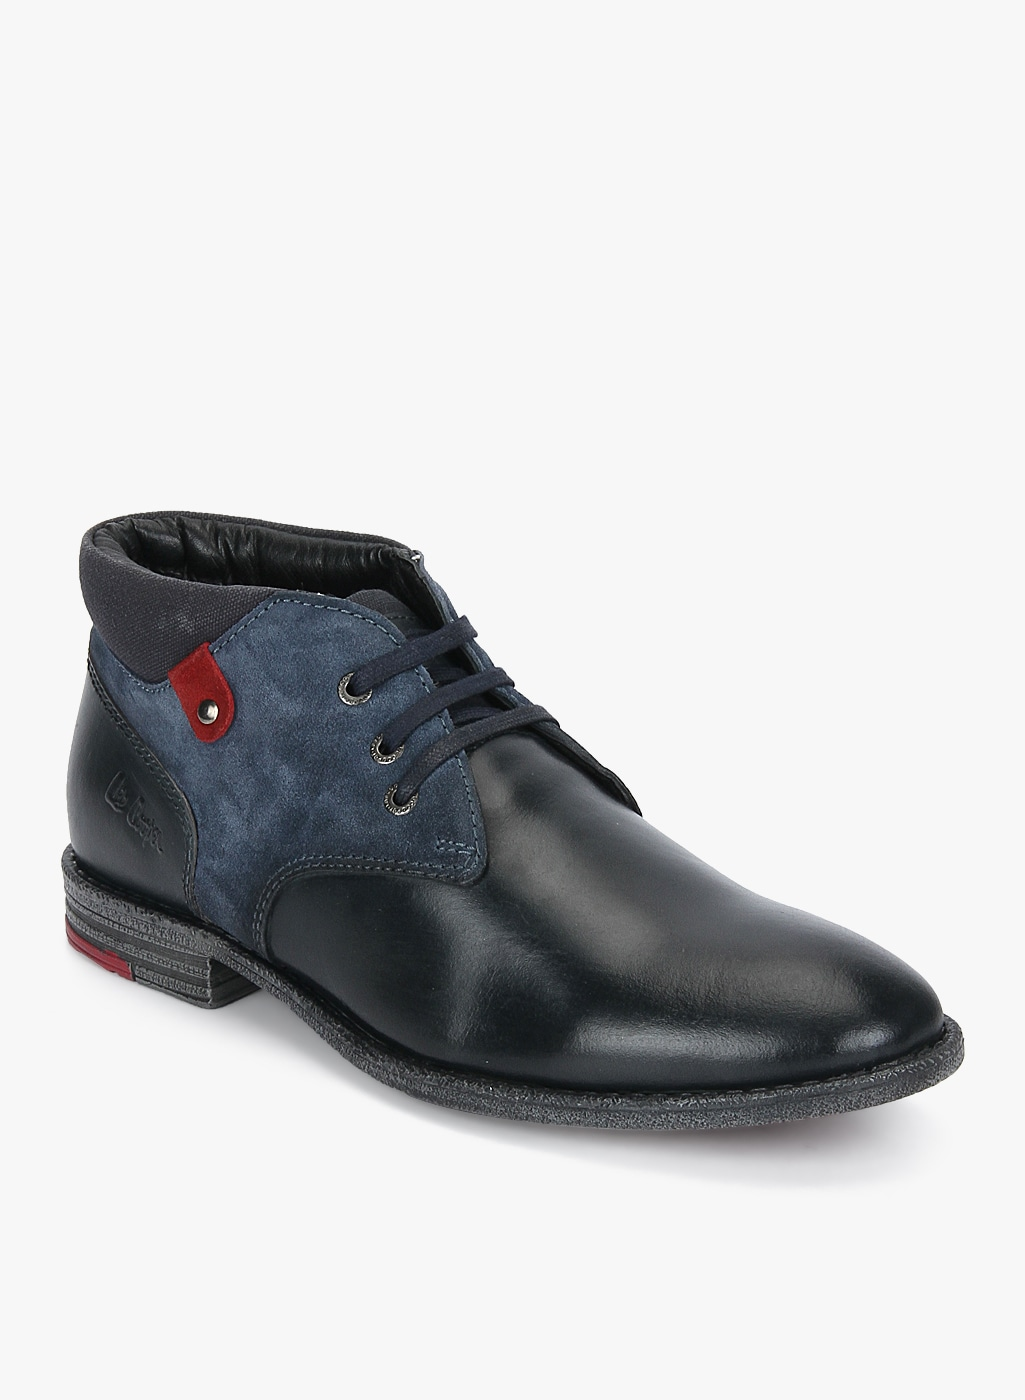 43eb484e Lee Cooper Black Boots for Men online in India at Best price on 22nd ...